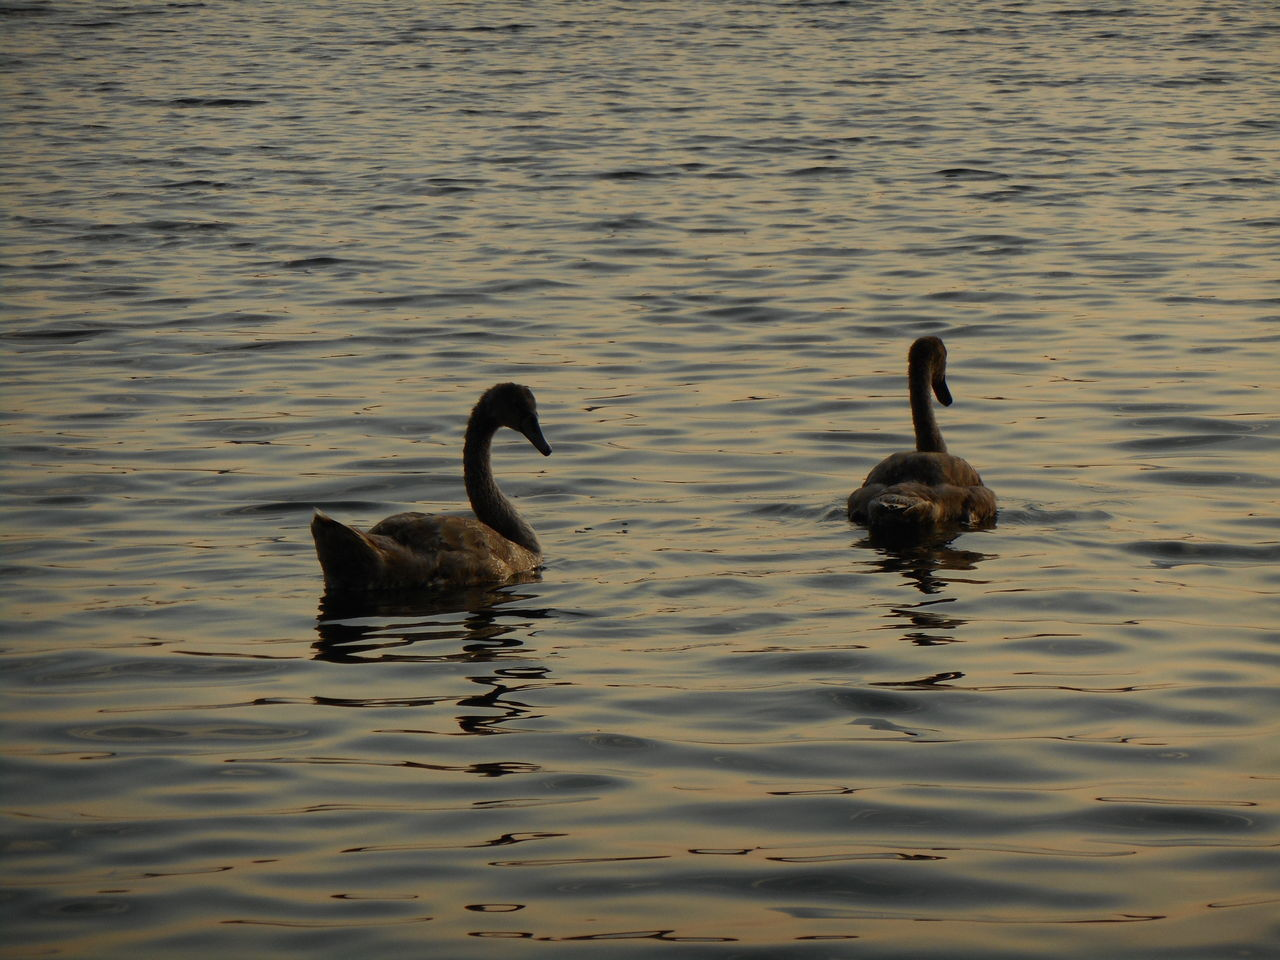 animals in the wild, animal themes, bird, lake, water, waterfront, nature, swimming, animal wildlife, no people, water bird, day, beauty in nature, outdoors, swan